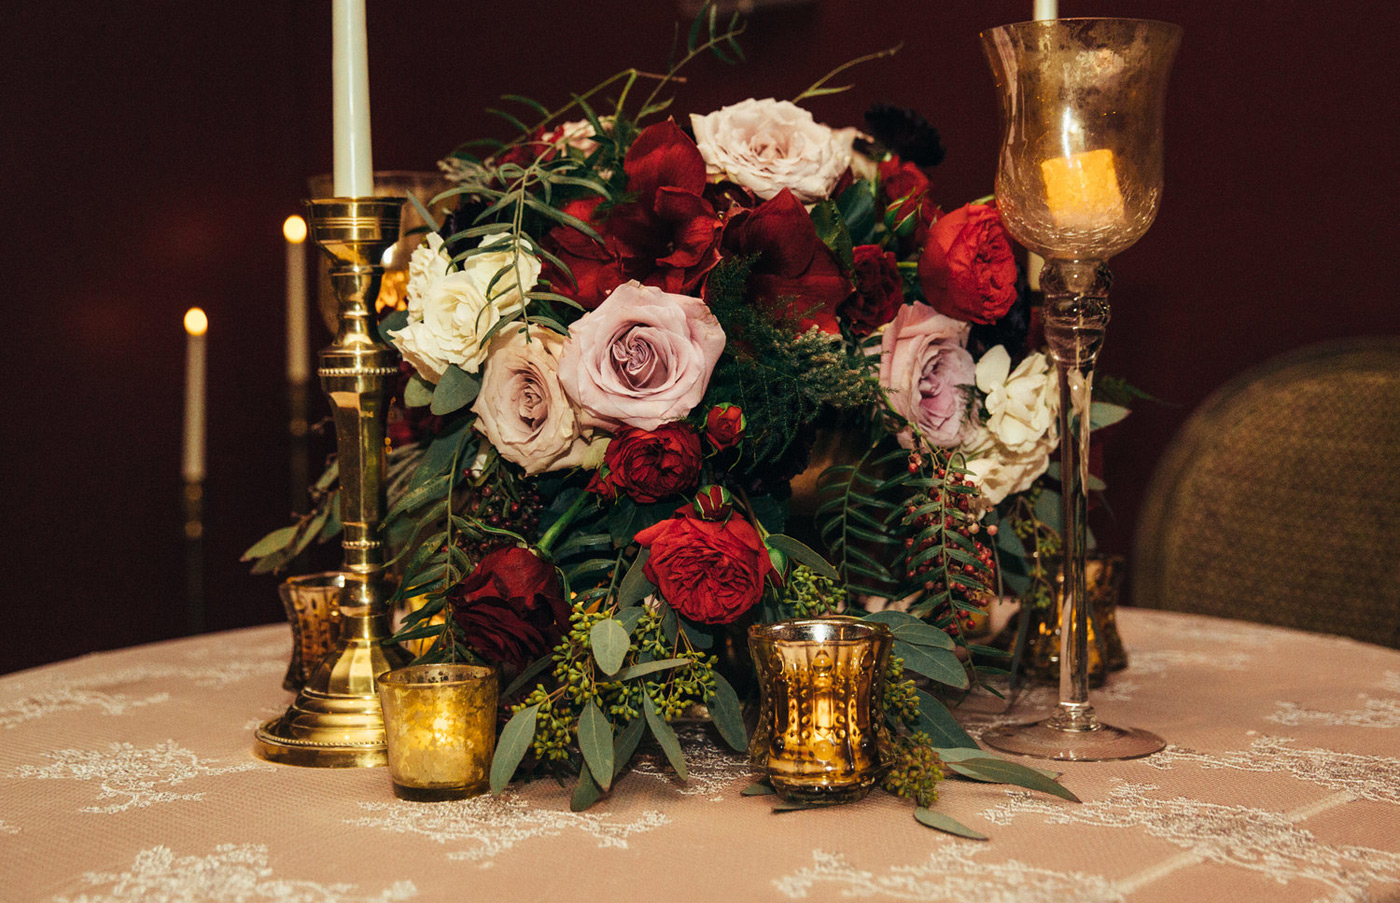 Floral arrangement with red, pink, and white roses and lush greenery on a blush table cloth with brass candlesticks